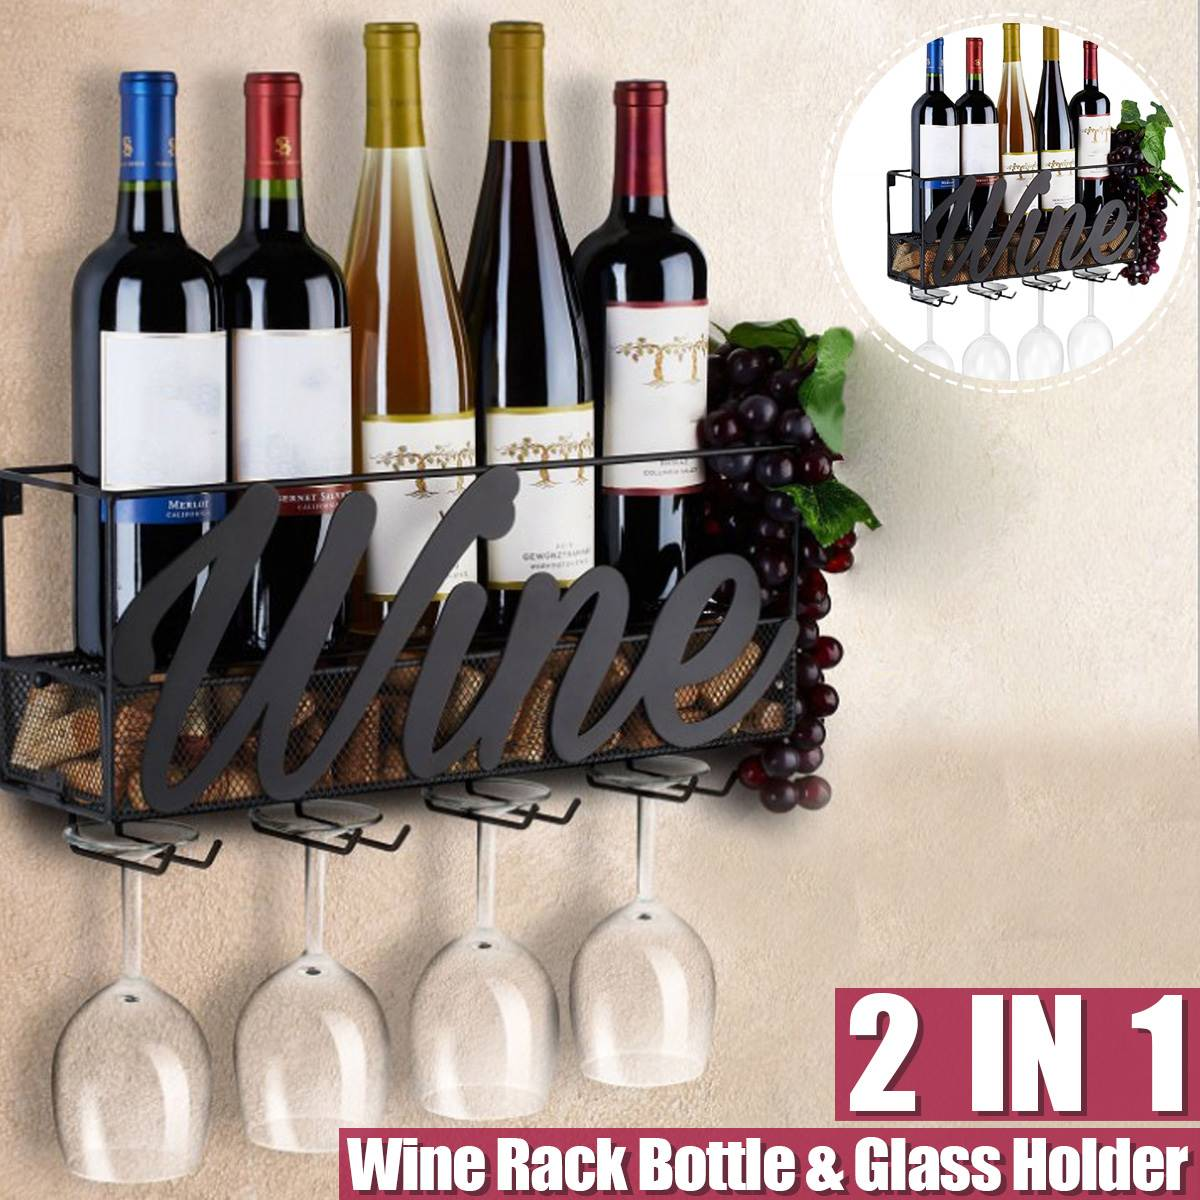 45x13x22cm Wall Mounted Wine Rack Bottle Store Champagne Shelf With 4 Built-in Wine Glass Holders And Extra Cork Tray